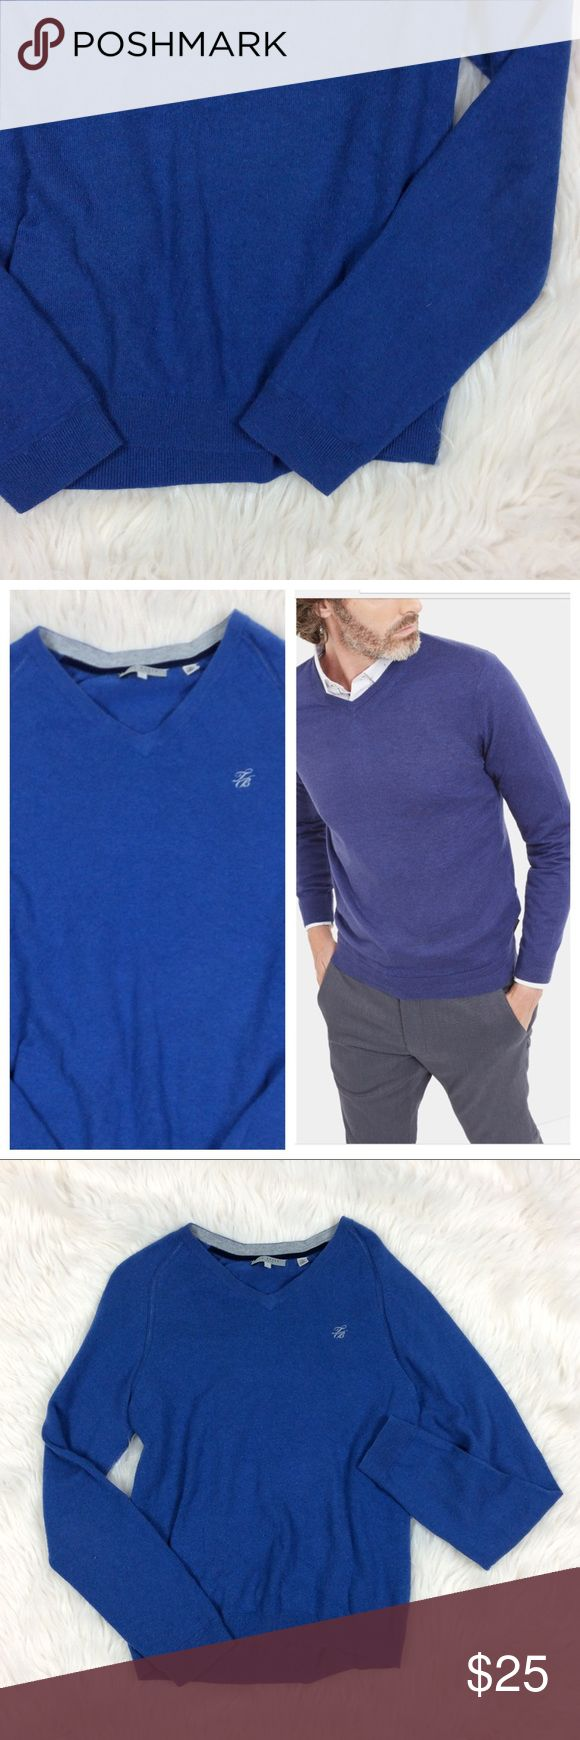 """Ted Baker London Wool Cashmere Blend Pullover Gently used good condition. Stock photo shows fit and style in different color without monogram. V-neck. Medium shade of blue. Very soft texture. Measurements approximately: shoulders 15"""" chest 36"""" sleeves 31"""" length 26  Ted Bake size 4 approximately US size medium/large. Slimmer fit Ted Baker London Shirts"""